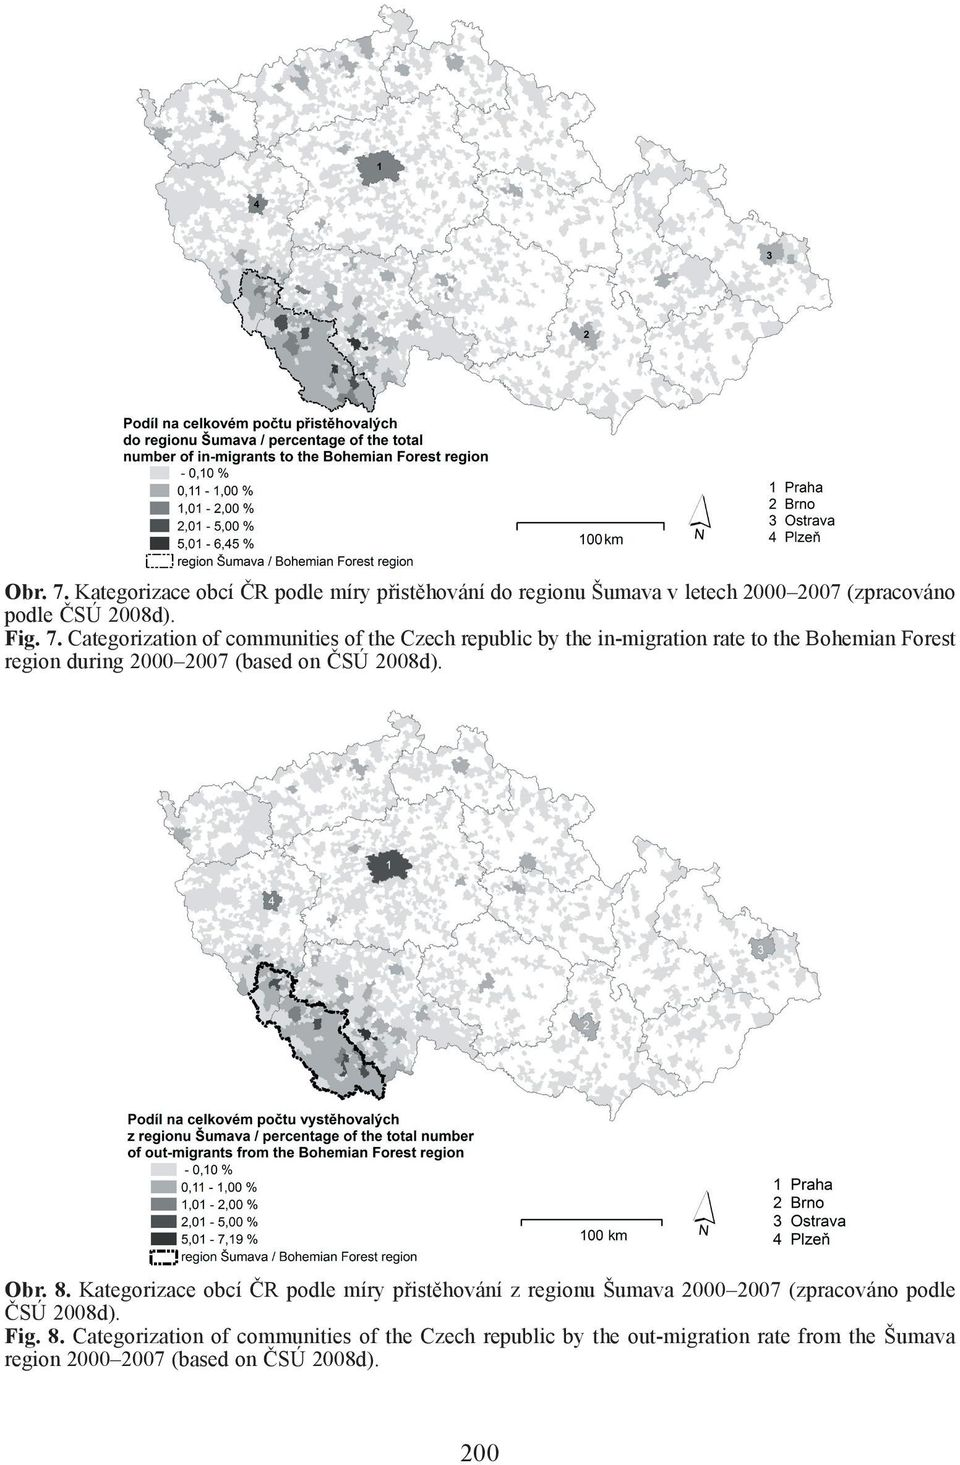 Categorization of communities of the Czech republic by the in-migration rate to the Bohemian Forest region during 2000 2007 (based